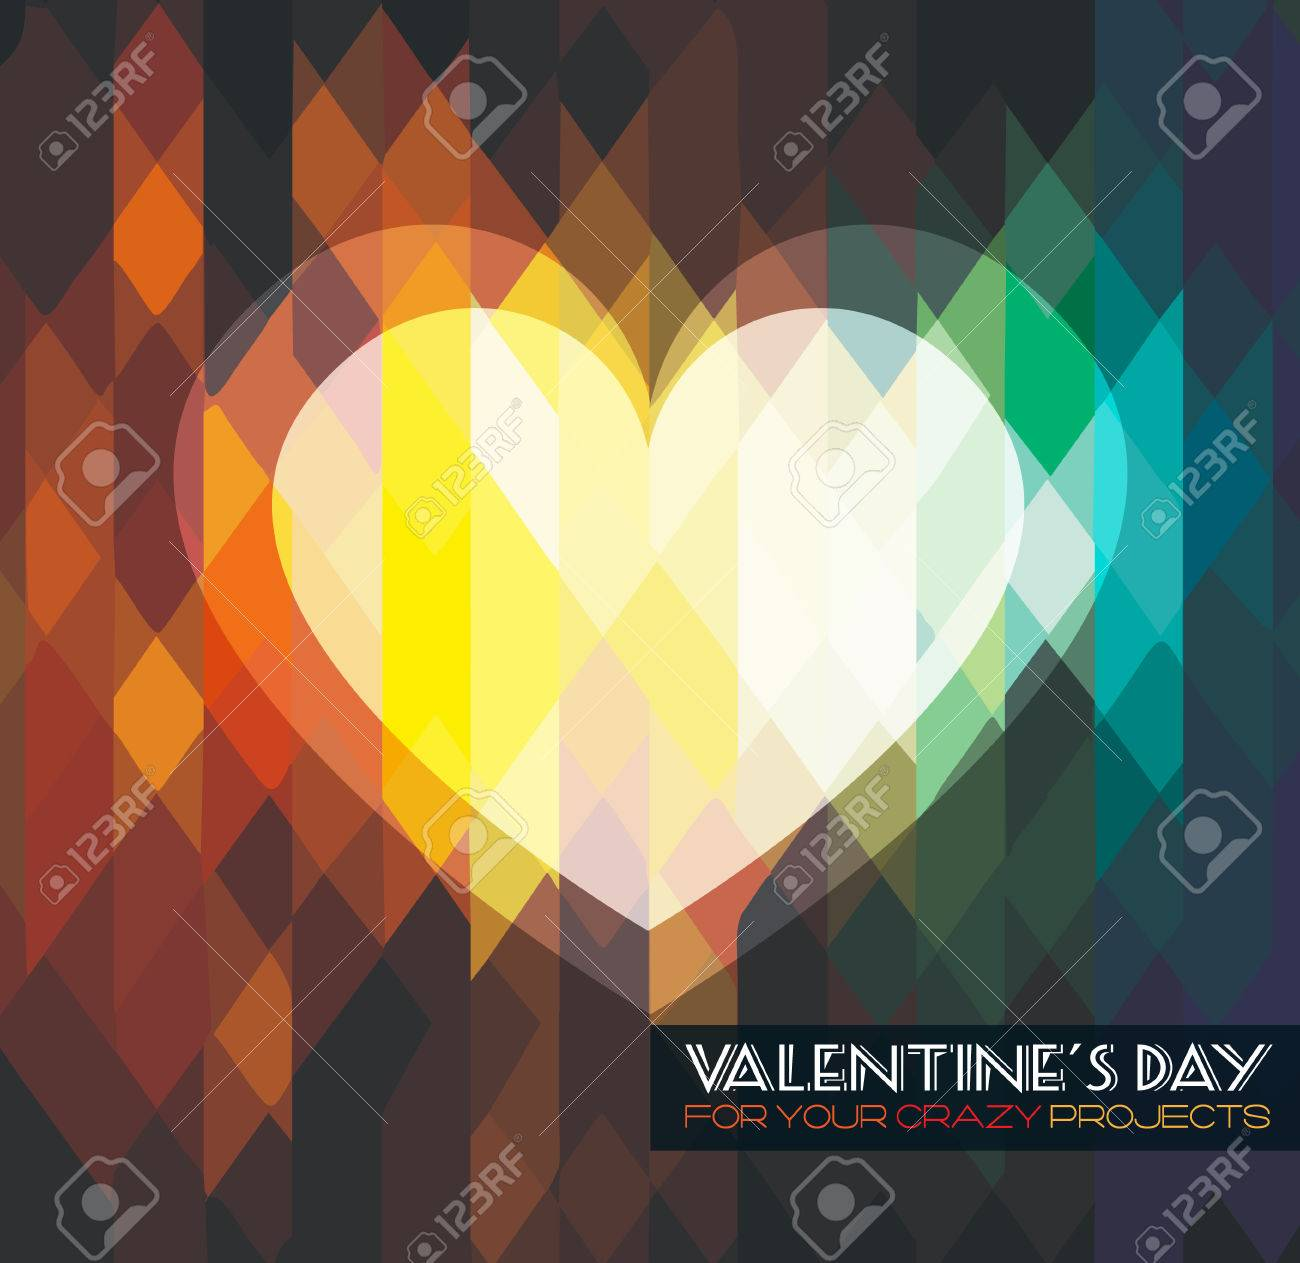 modern stylish valentine s day template for your flyer backgrounds modern stylish valentine s day template for your flyer backgrounds stock vector 25549496